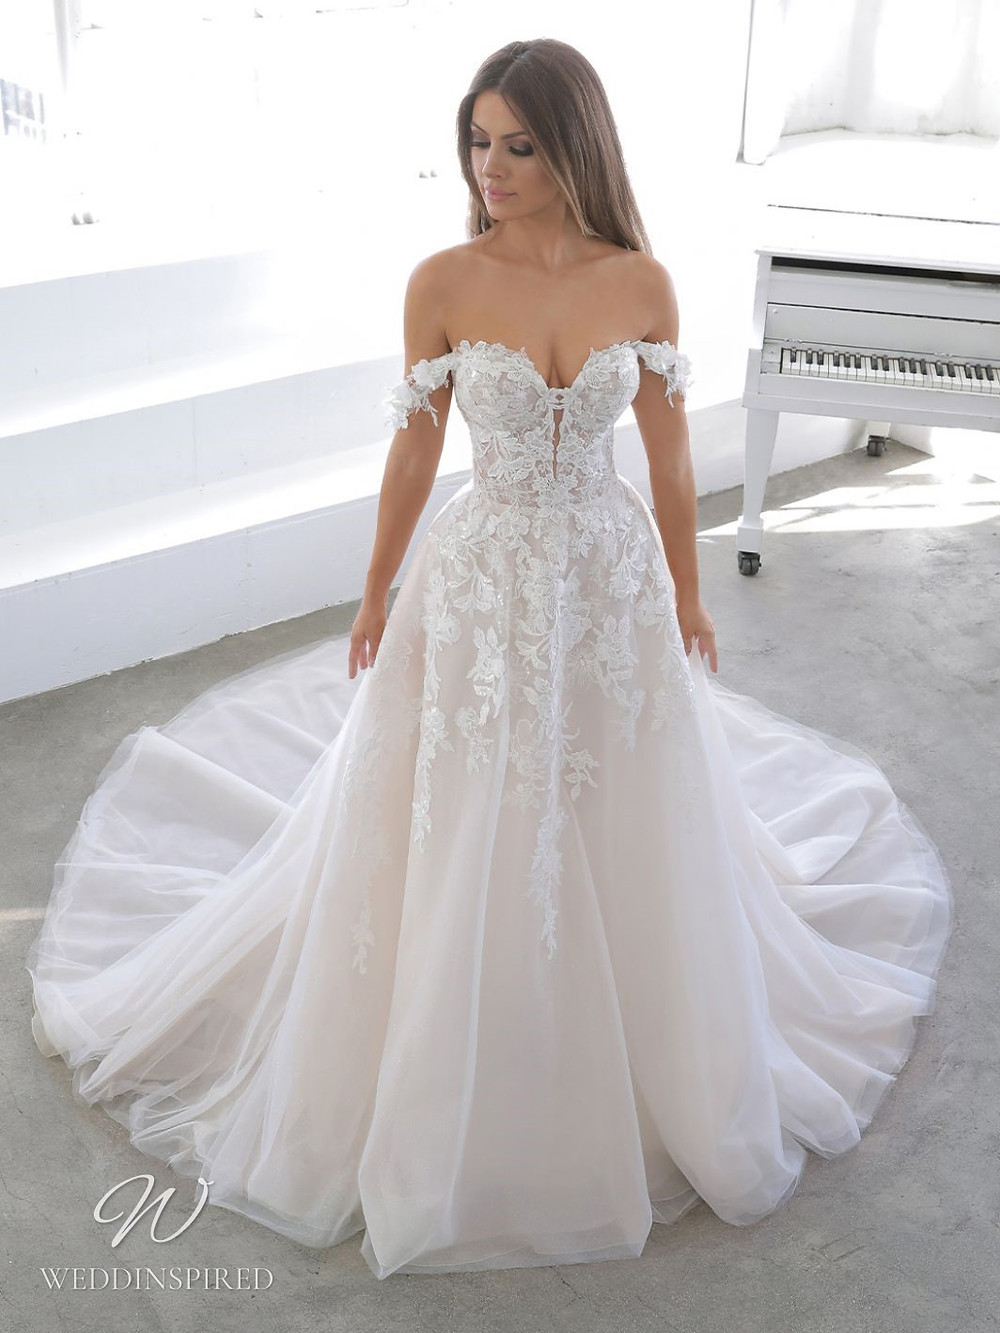 A Blue by Enzoani 2021 off the shoulder lace and tulle A-line wedding dress